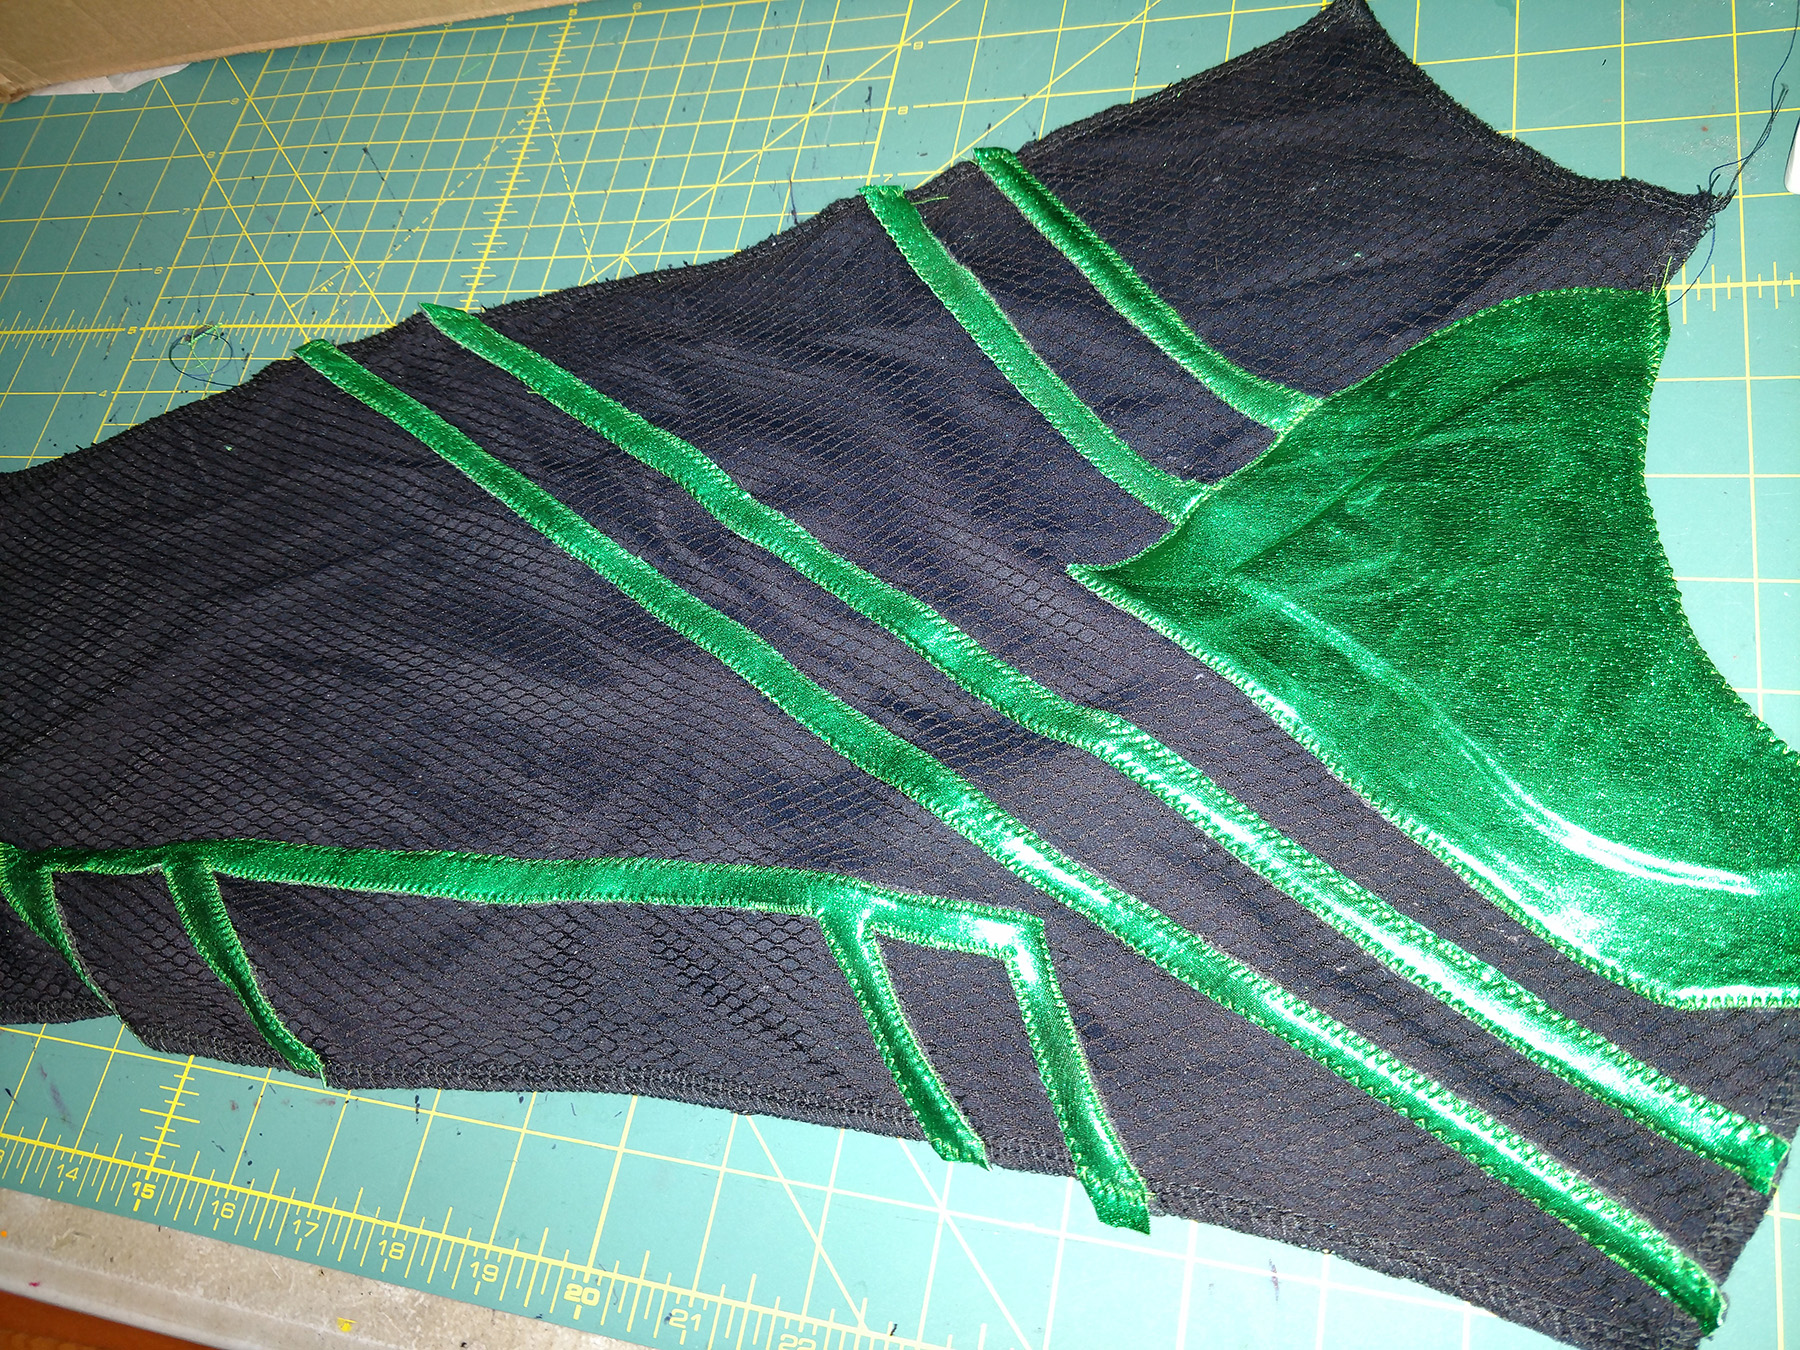 Lines of shiny green spandex, stitched down to a sleeve cut from textured black spandex.